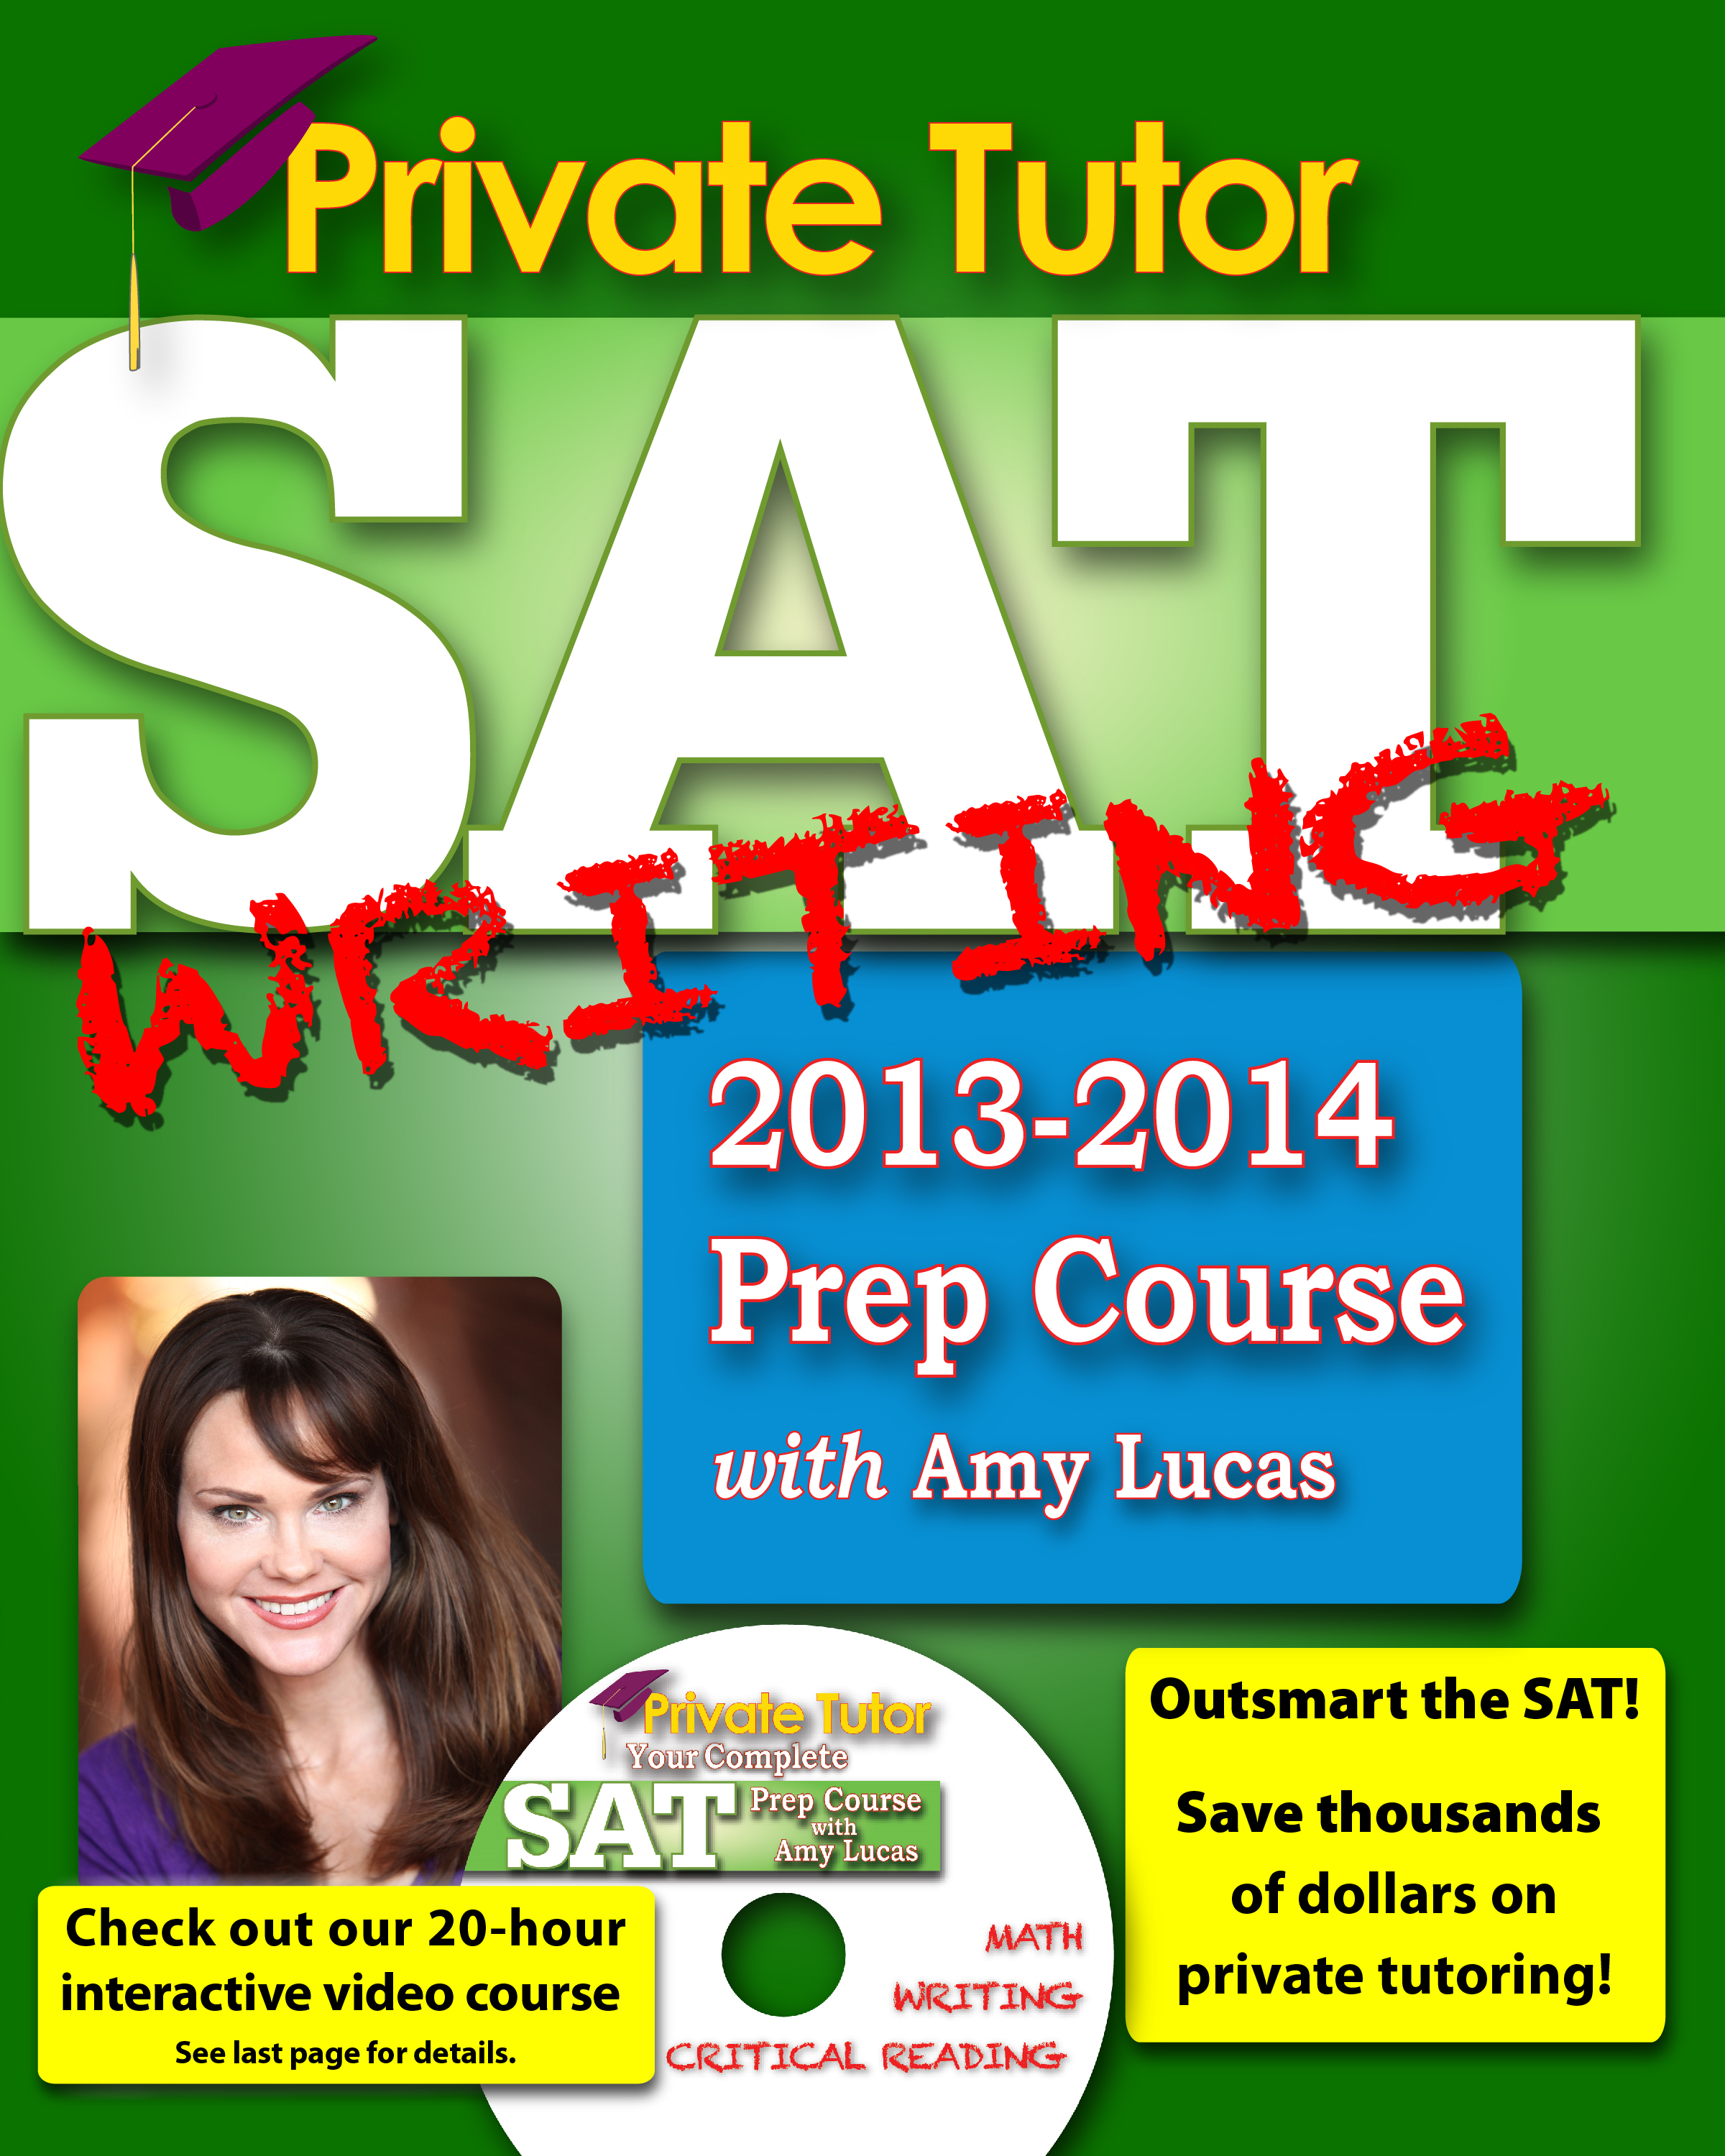 Private Tutor - SAT Writing 2013-2014 Prep Course